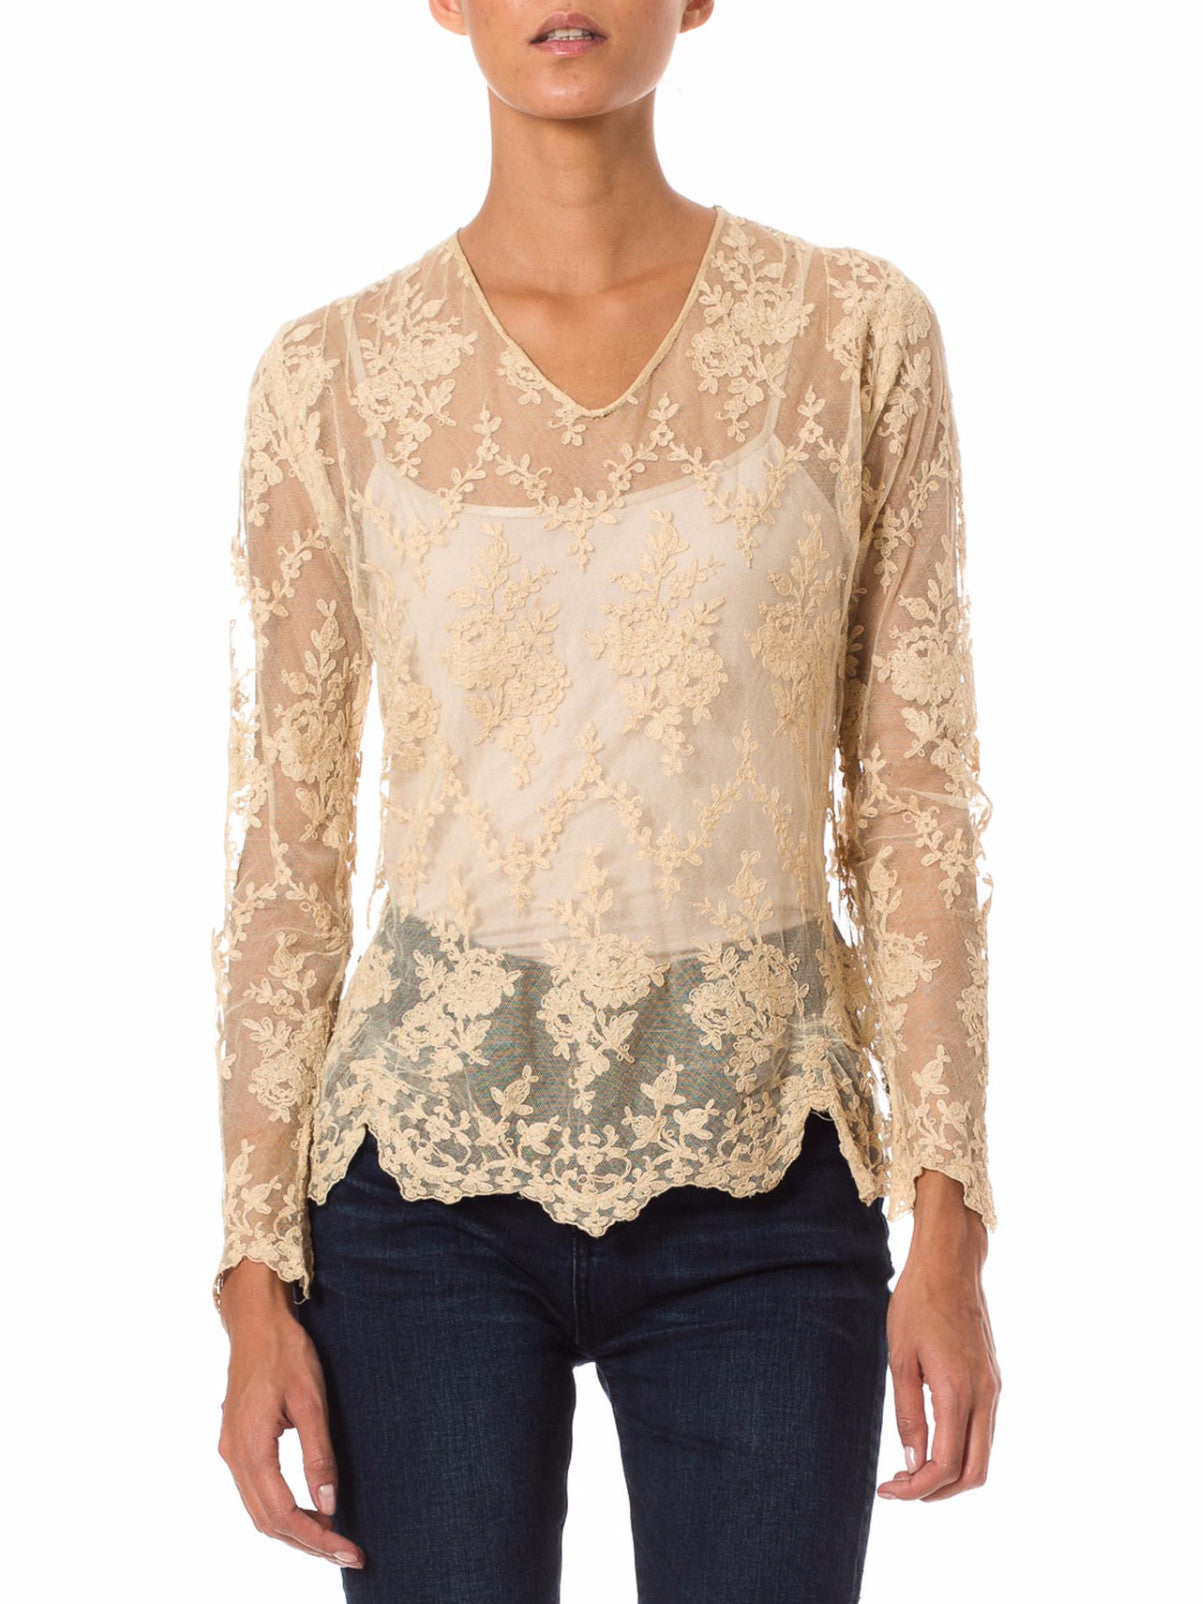 Sheer Beige Mesh Top with Floral Embroidery